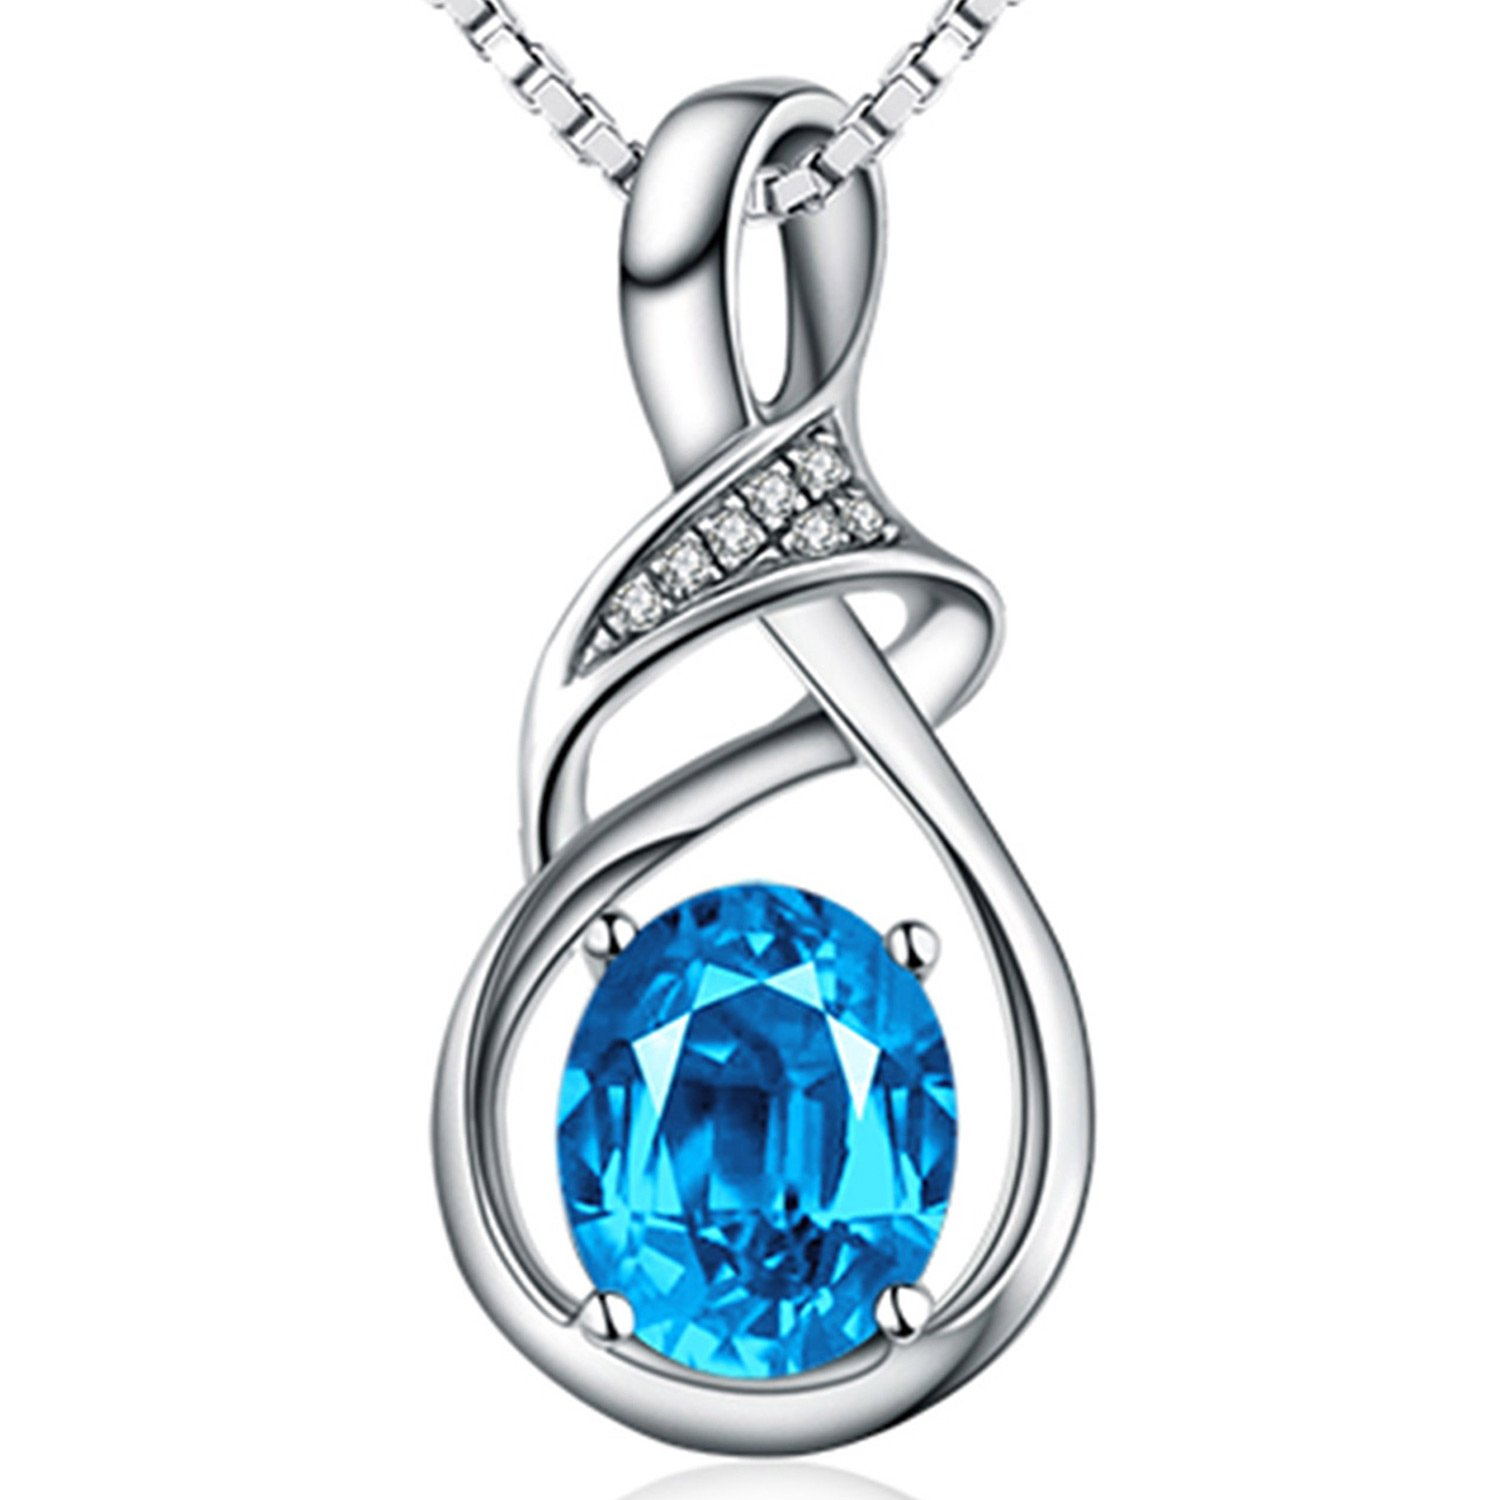 HXZZ Fine Jewelry Gifts for Women Sterling Silver Natural Gemstone Swiss Blue Topaz Pendant Necklace by HXZZ